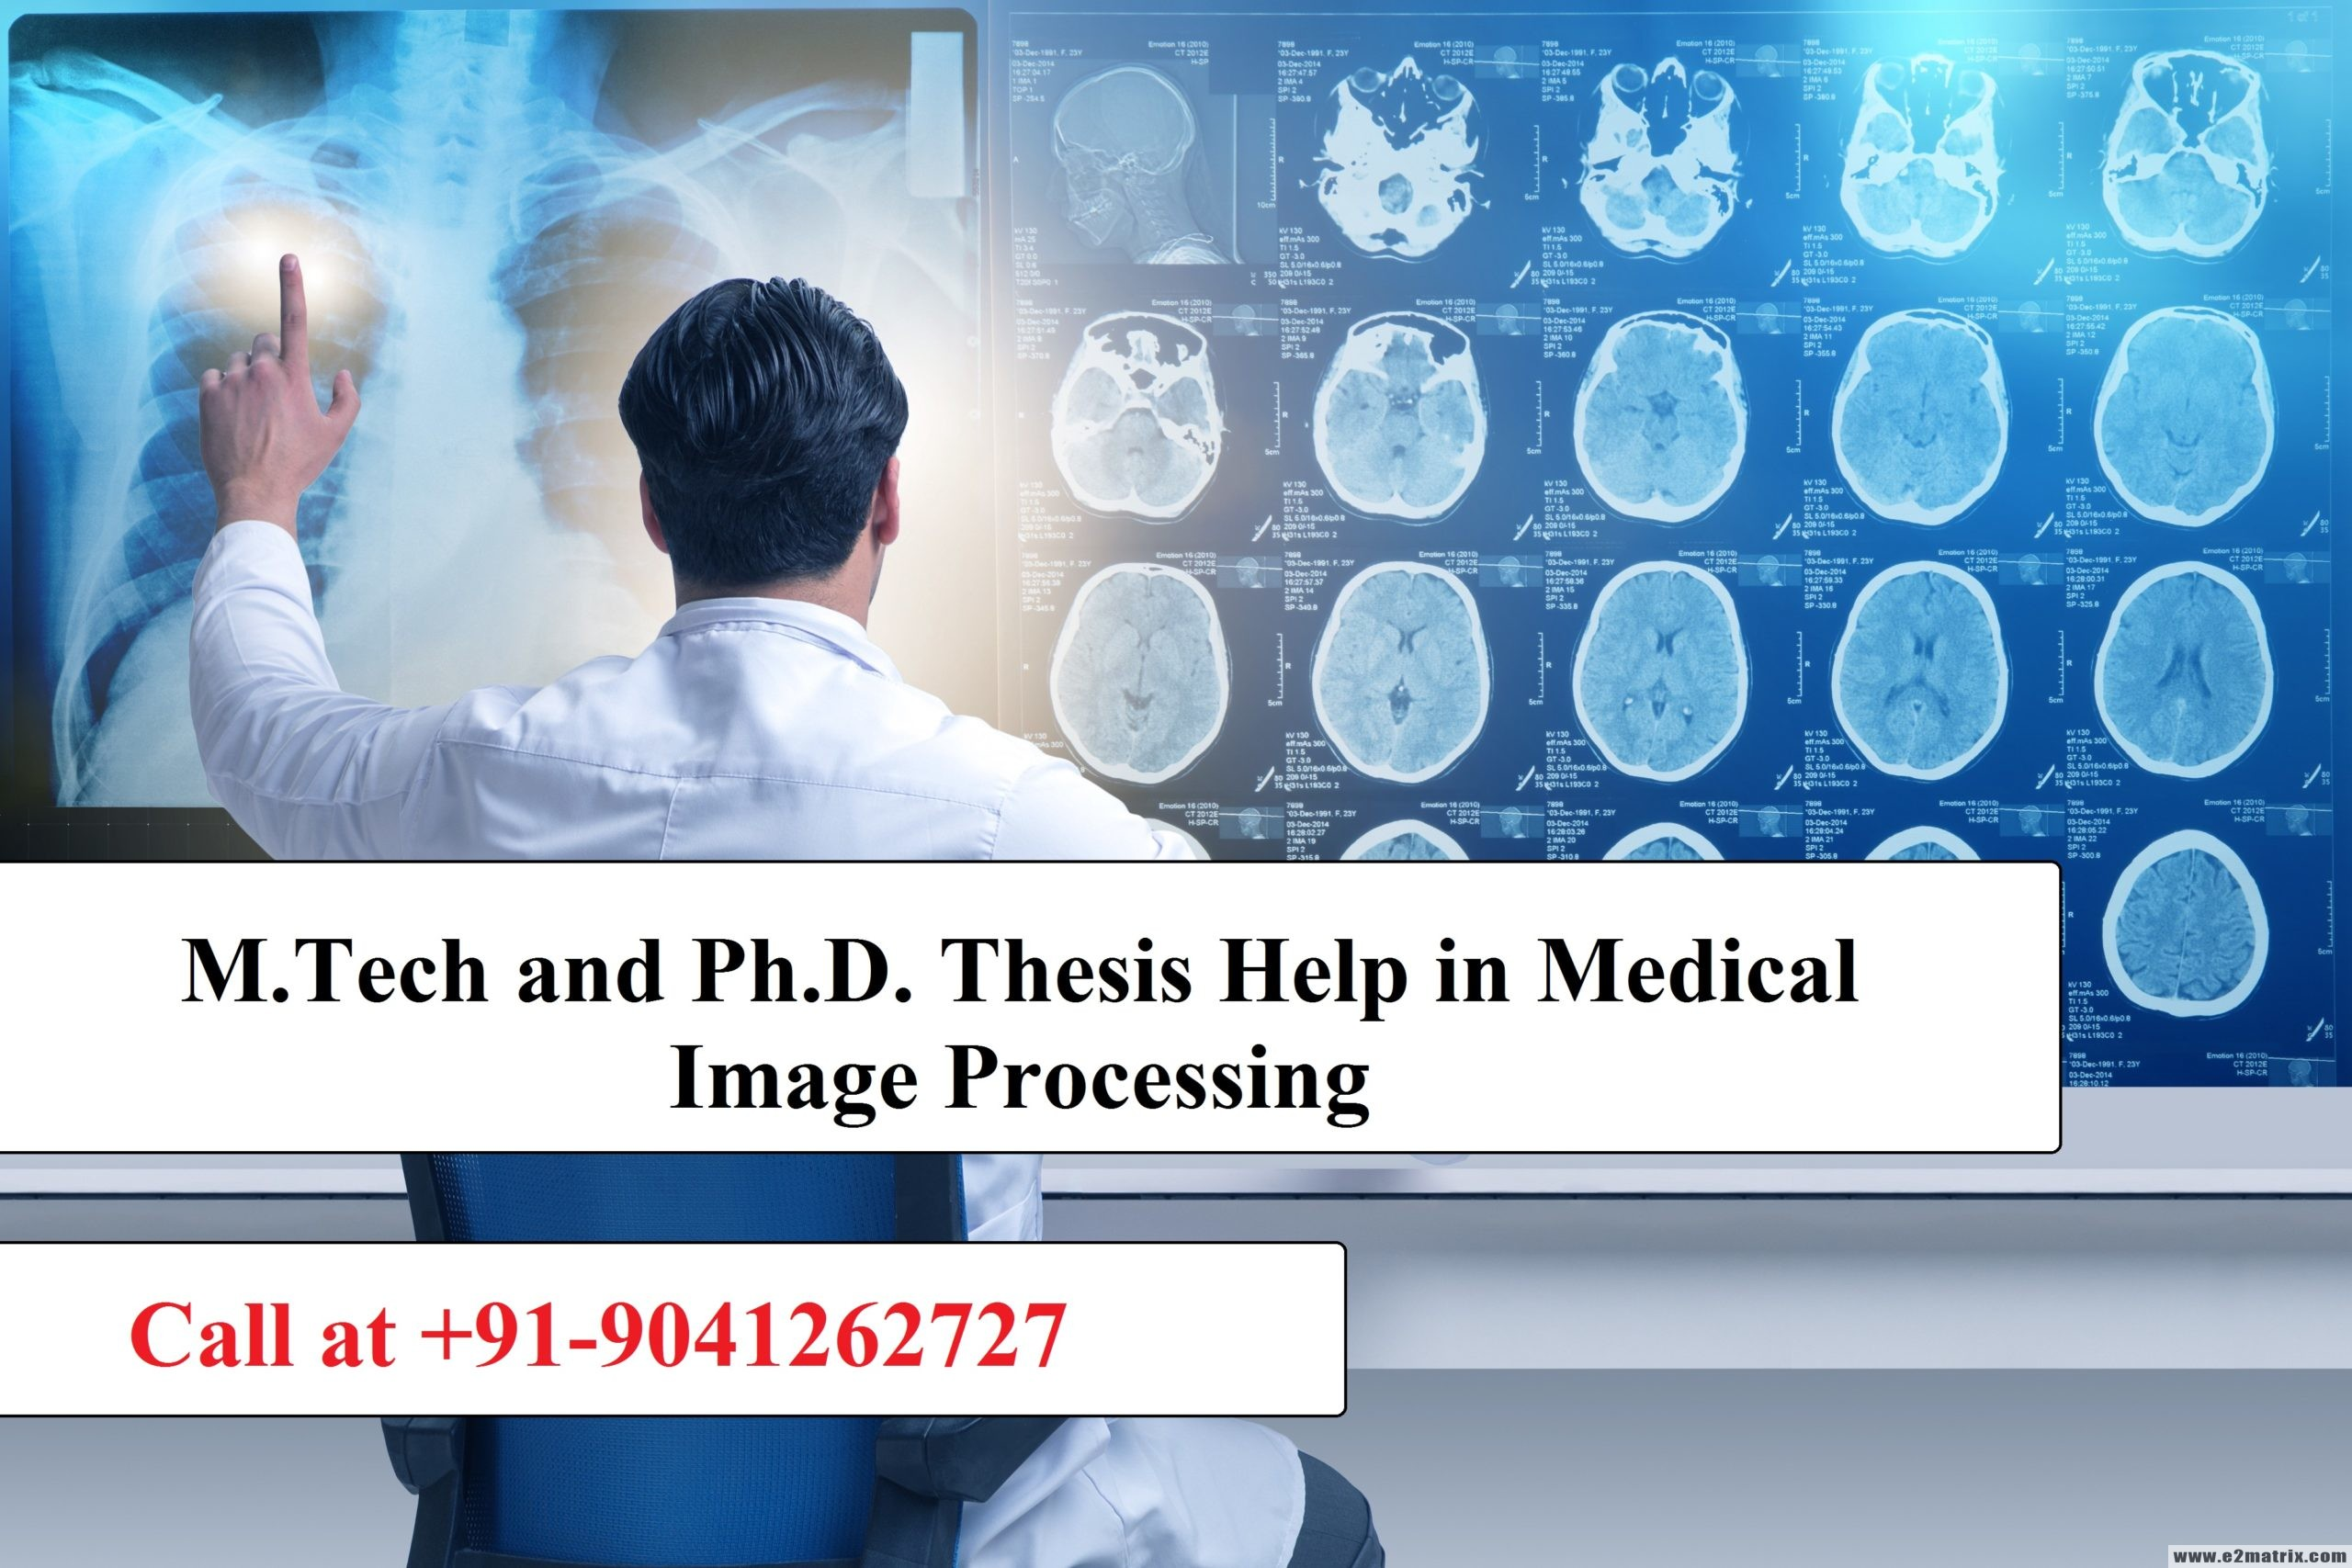 M.Tech and PhD thesis help in Medical Image Processing